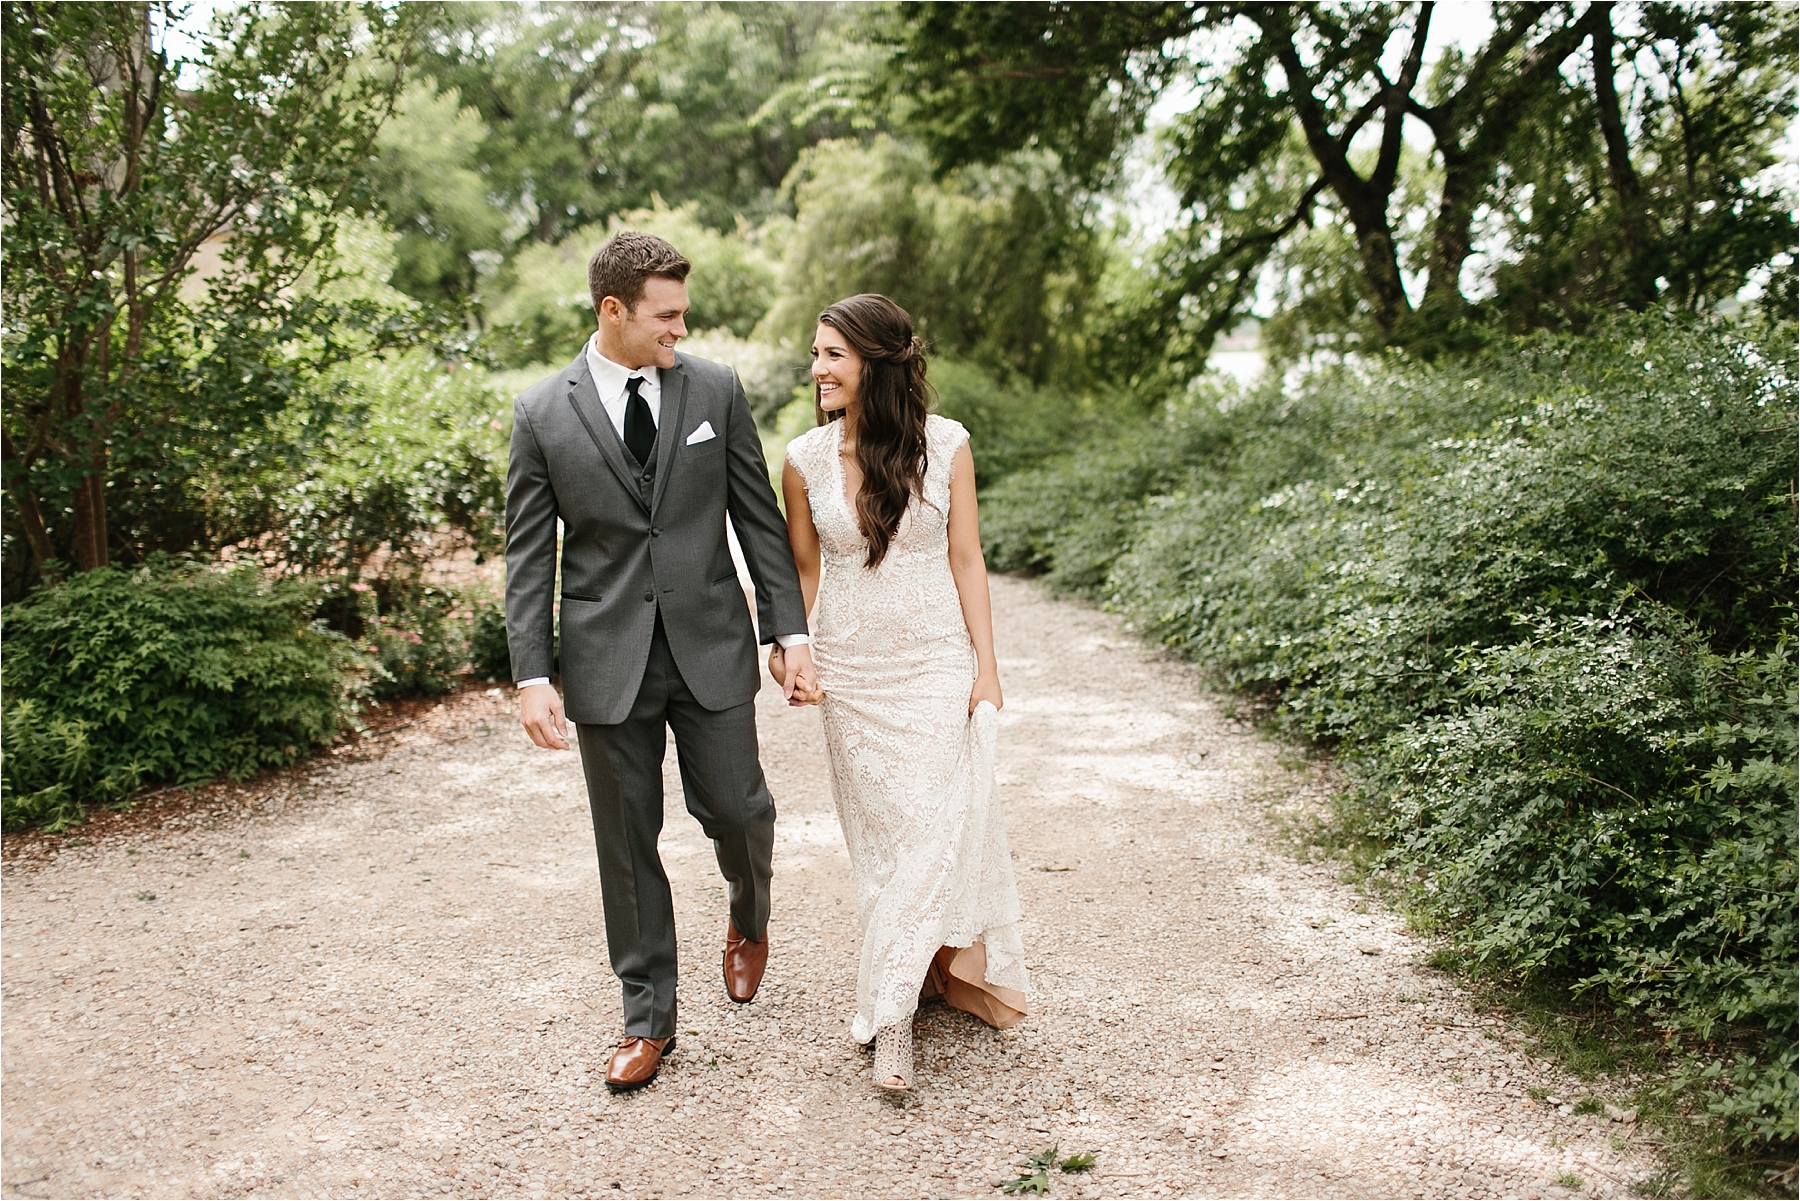 Devyn + Caden __ a Dallas Arboretum Garden Style Wedding by North Texas Wedding Photographer Rachel Meagan Photography __ 035